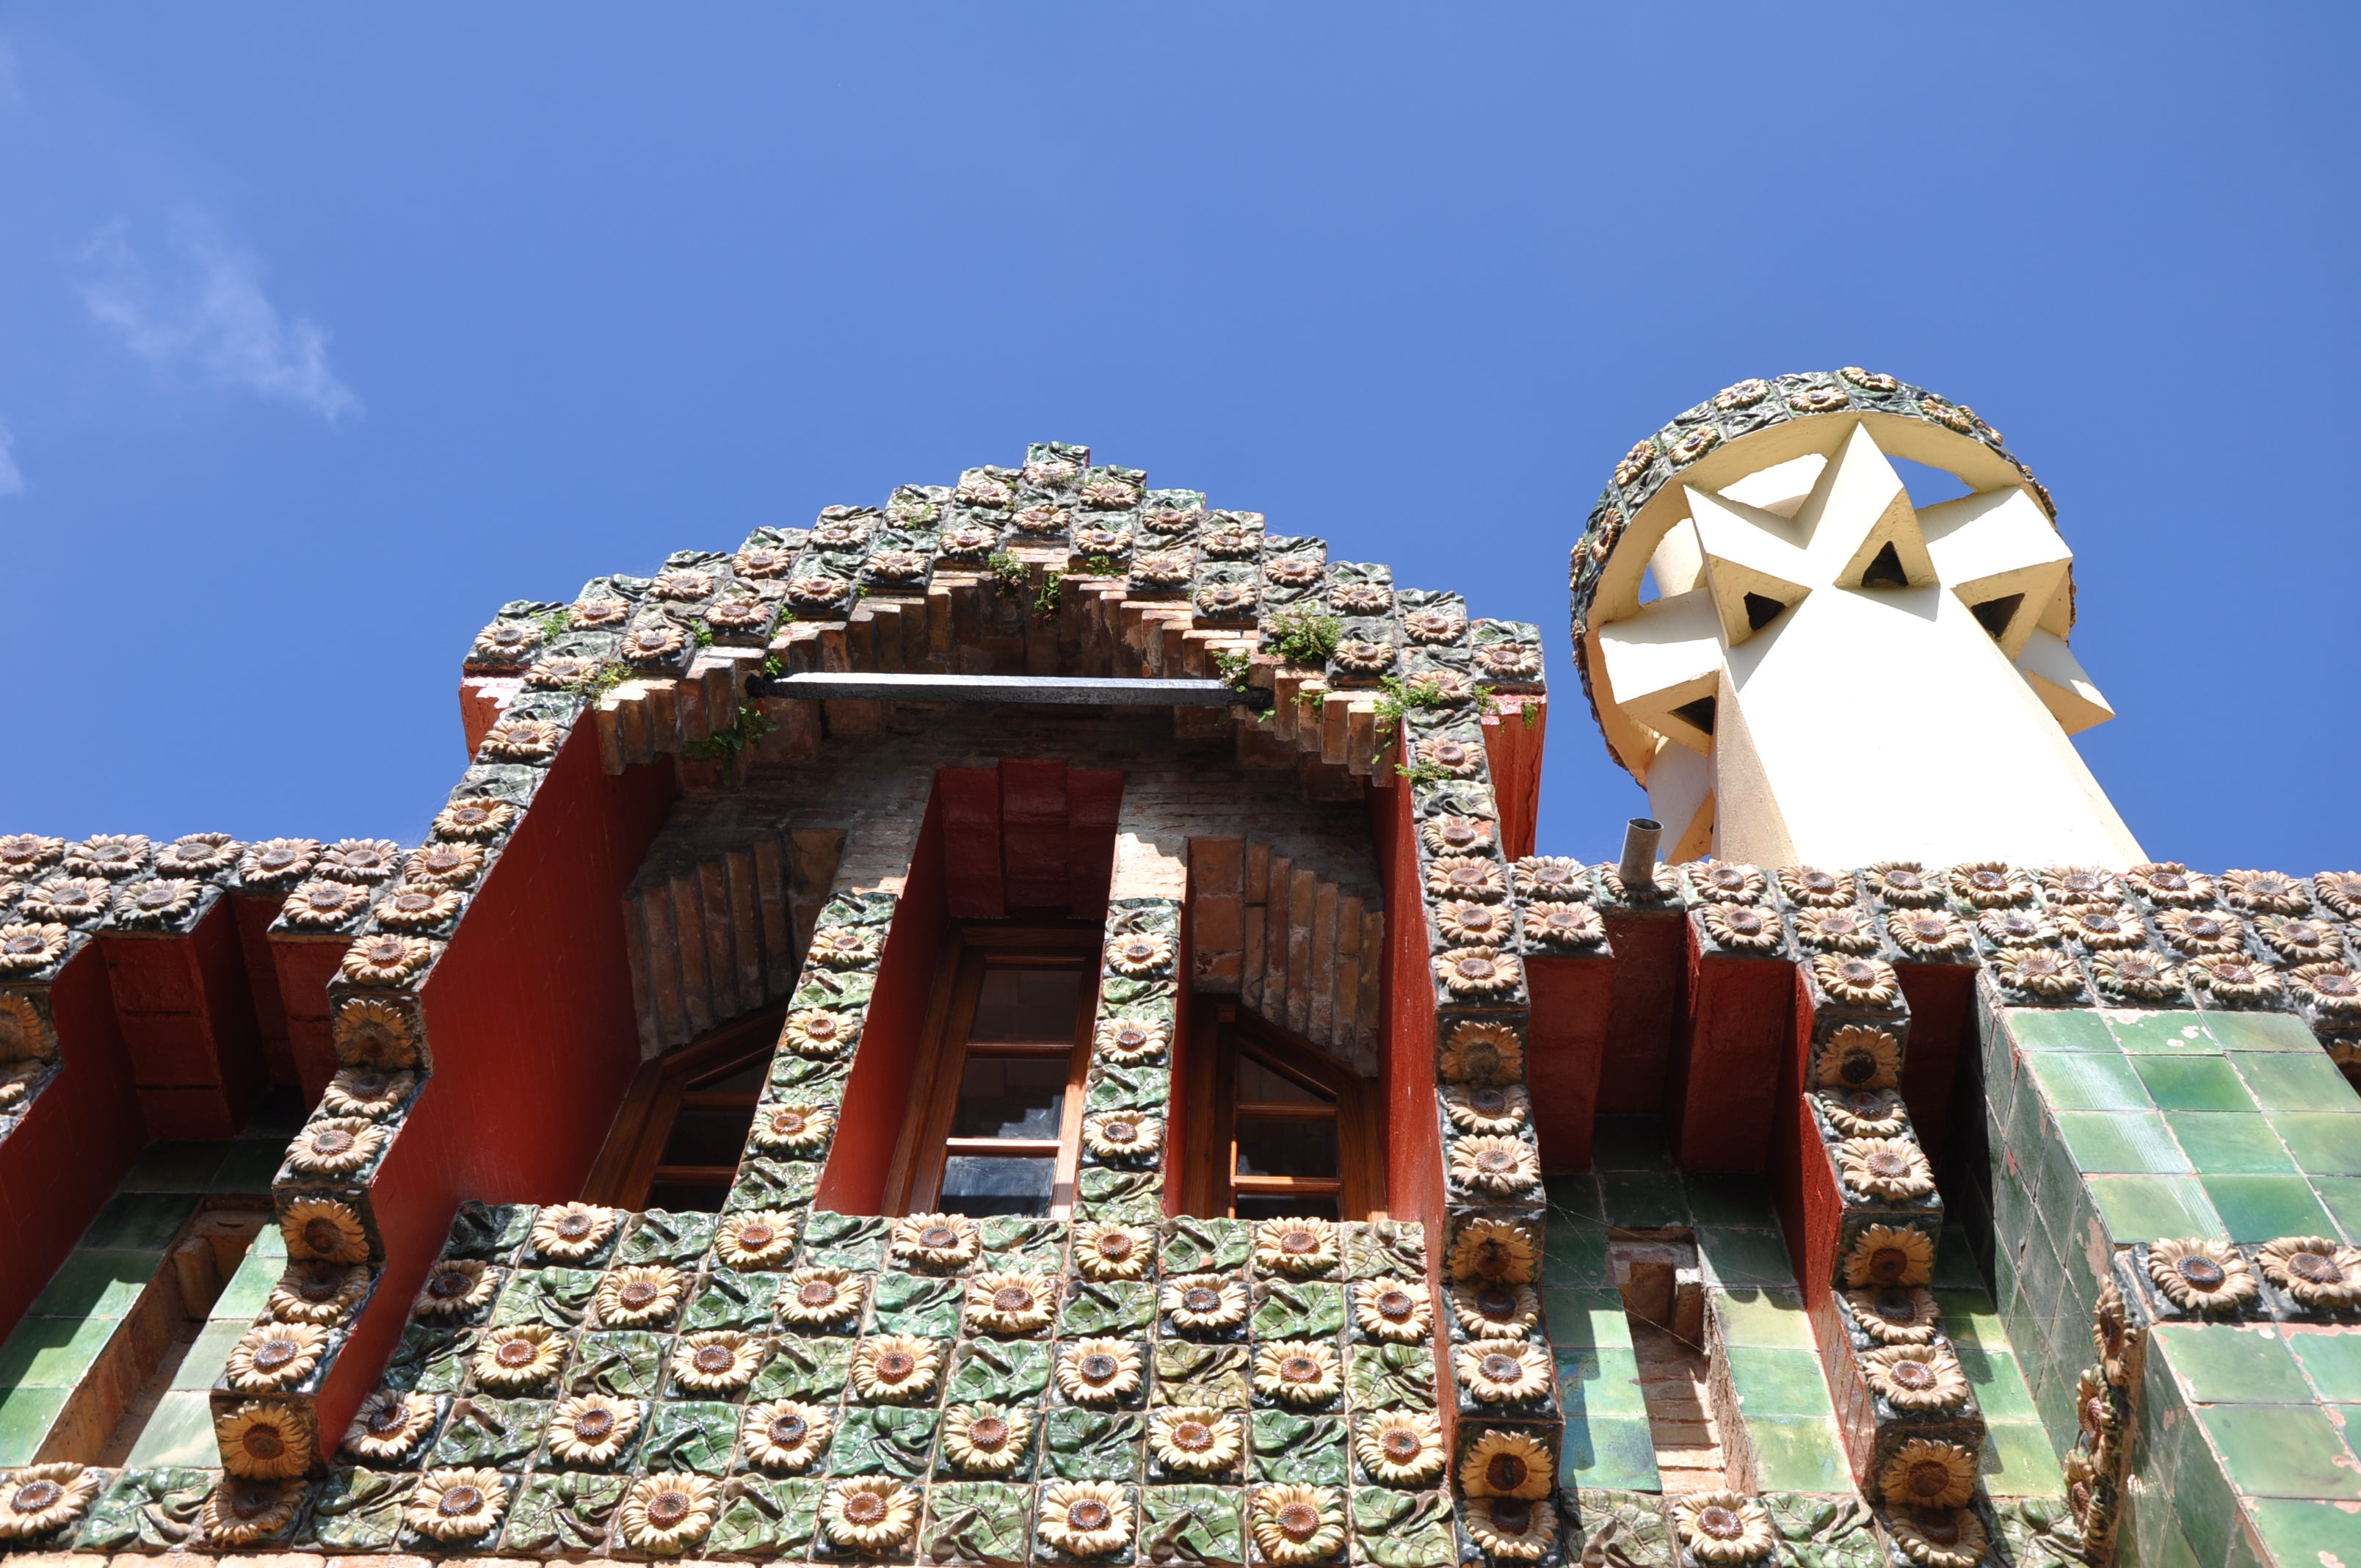 The Whim of Gaudí